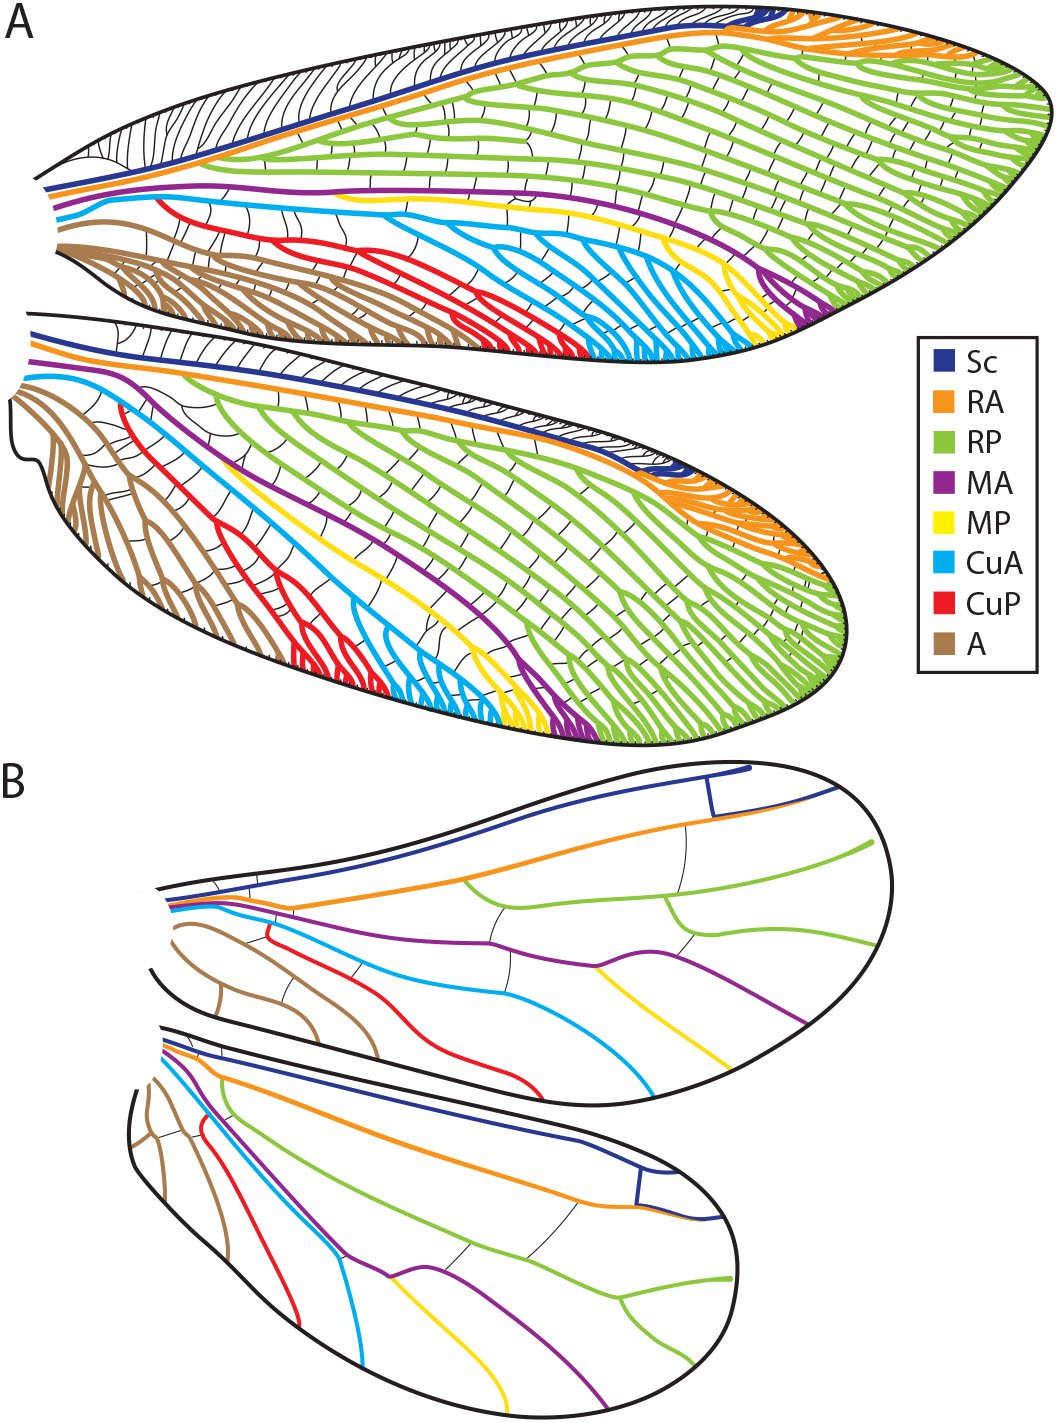 Wing Tracheation in Chrysopidae and Other Neuropterida